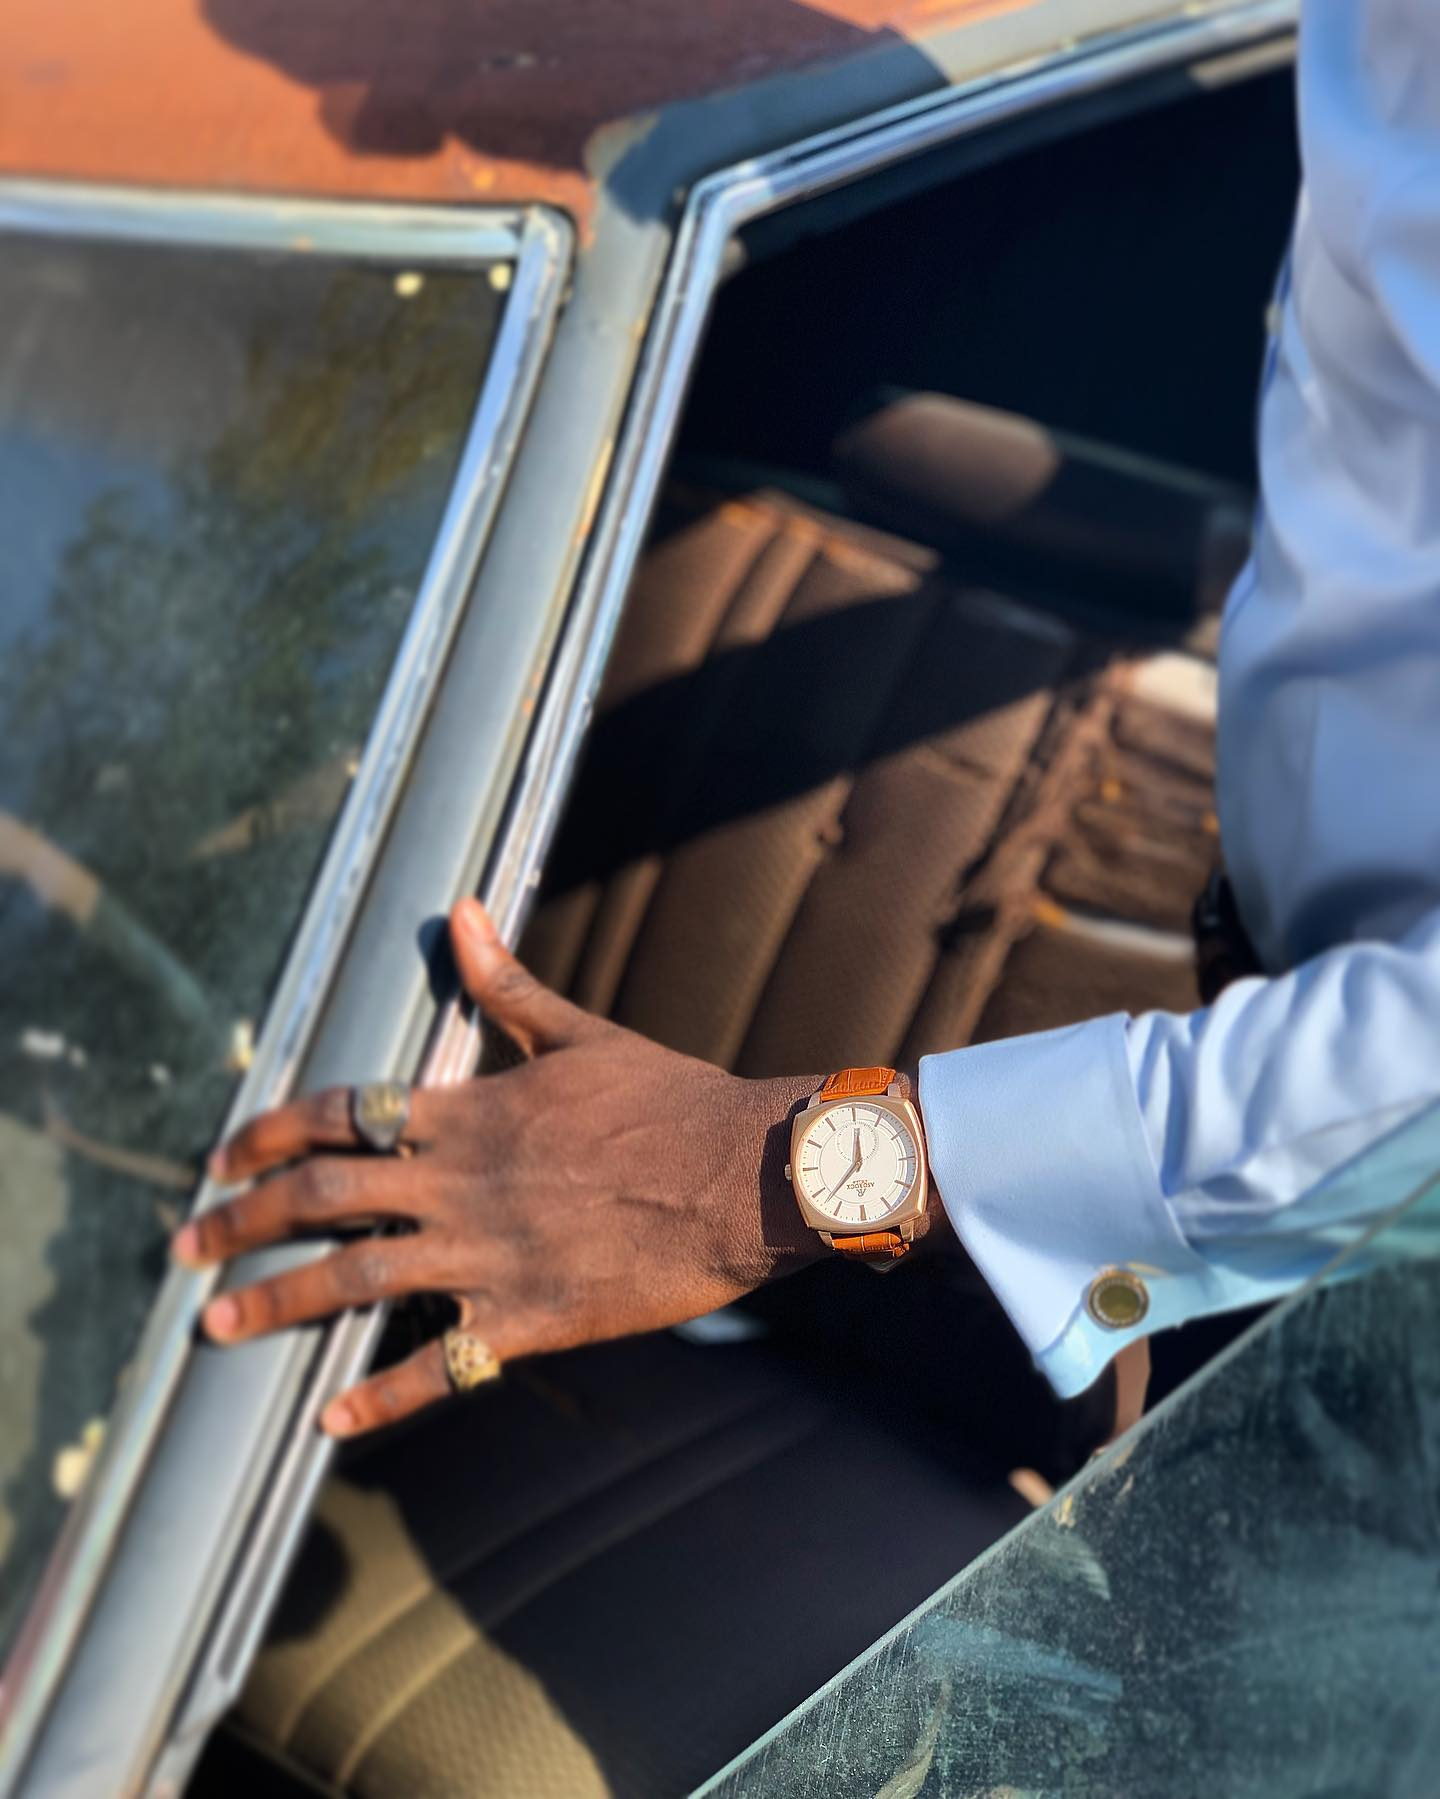 asorock-watches-of-nigeria-monolith-watch-rosegold-whitedial-africas first luxury watch brand